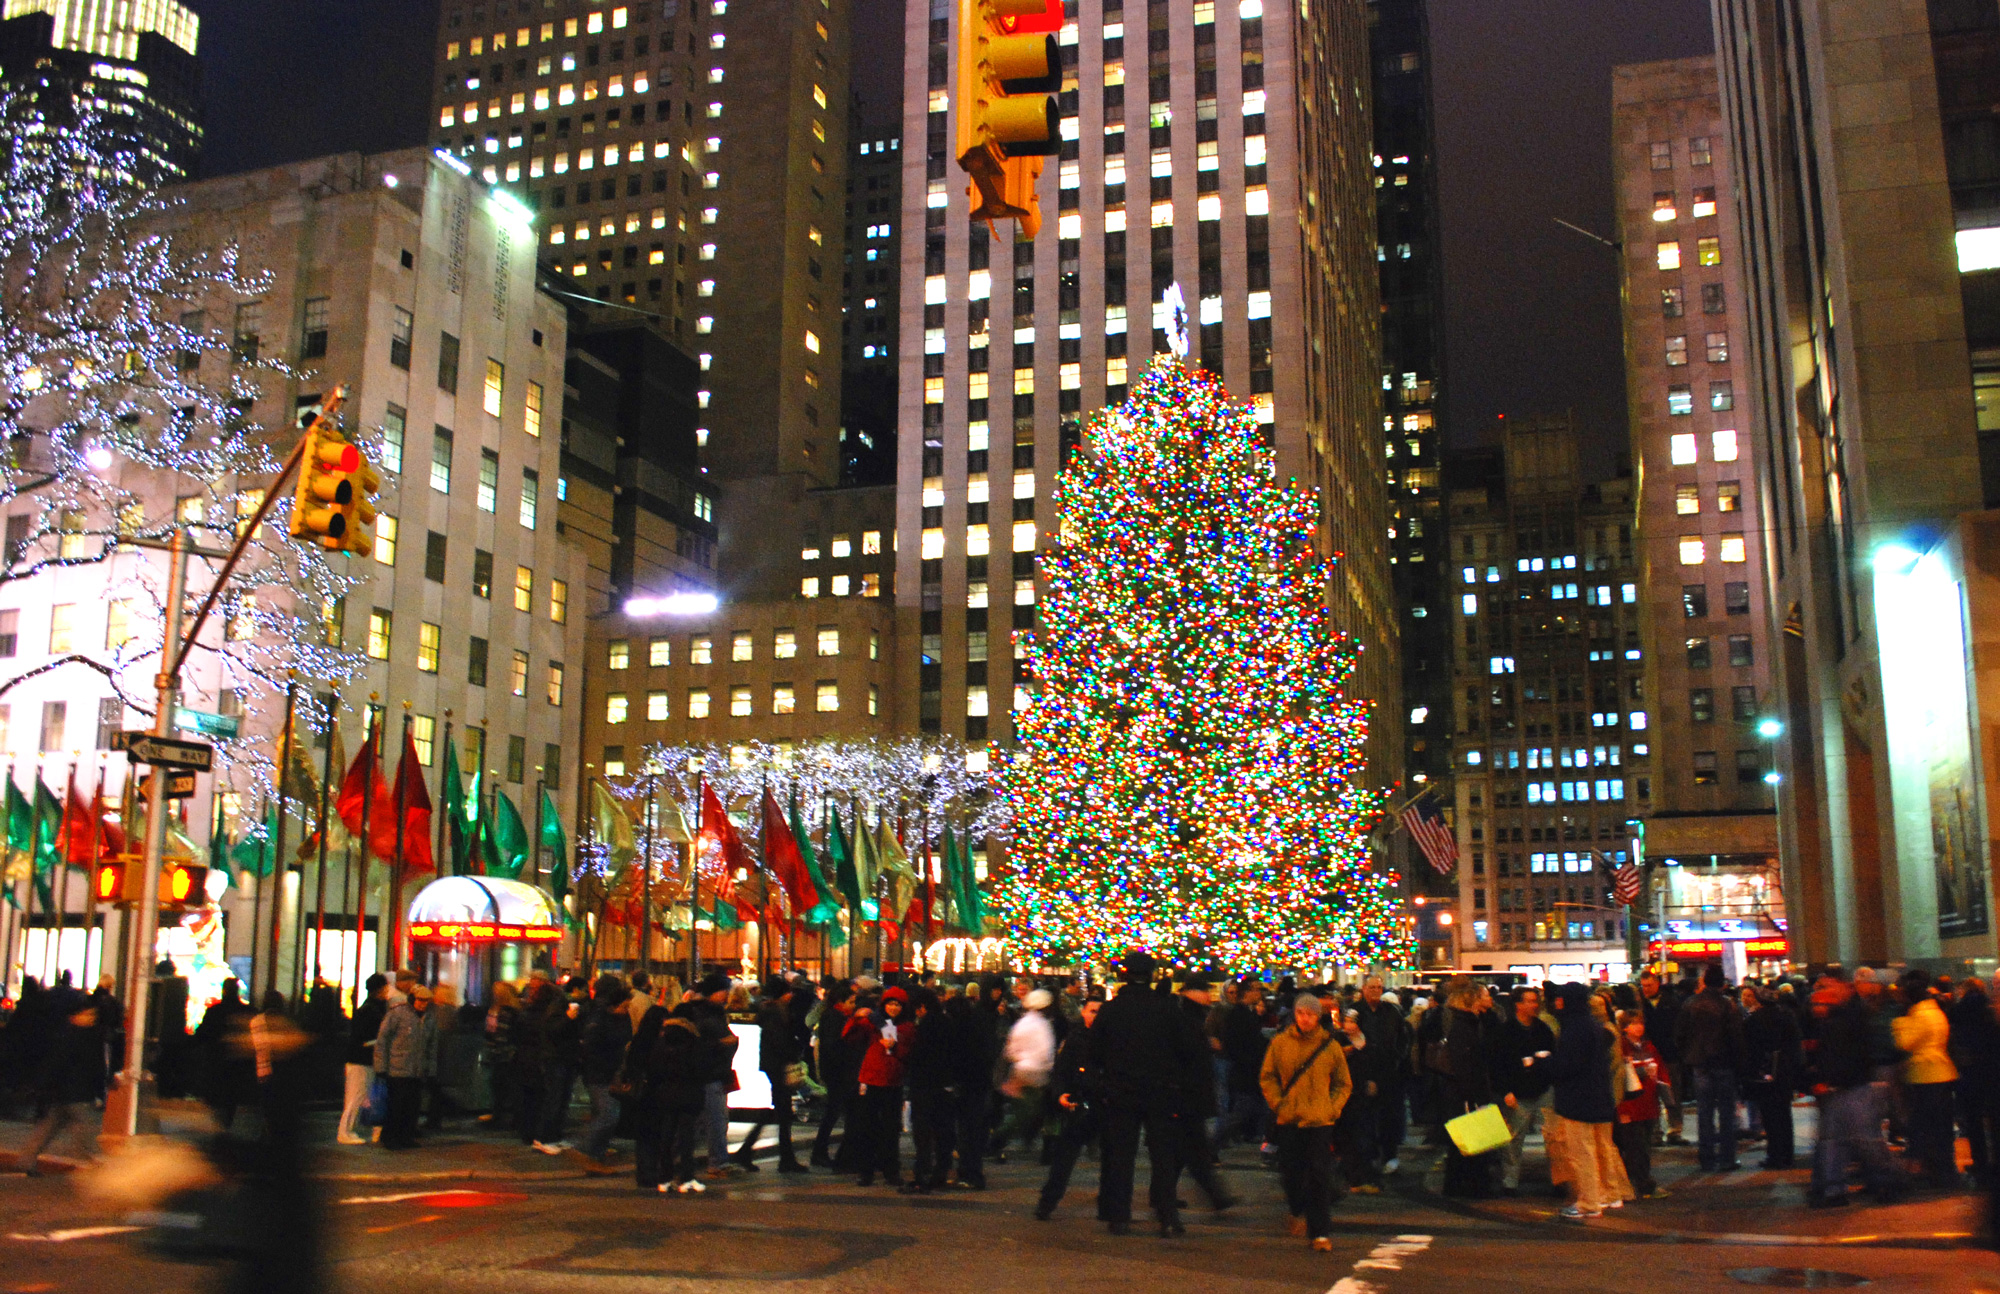 Rockefeller-Center-Christmas-Tree-crowds.jpg